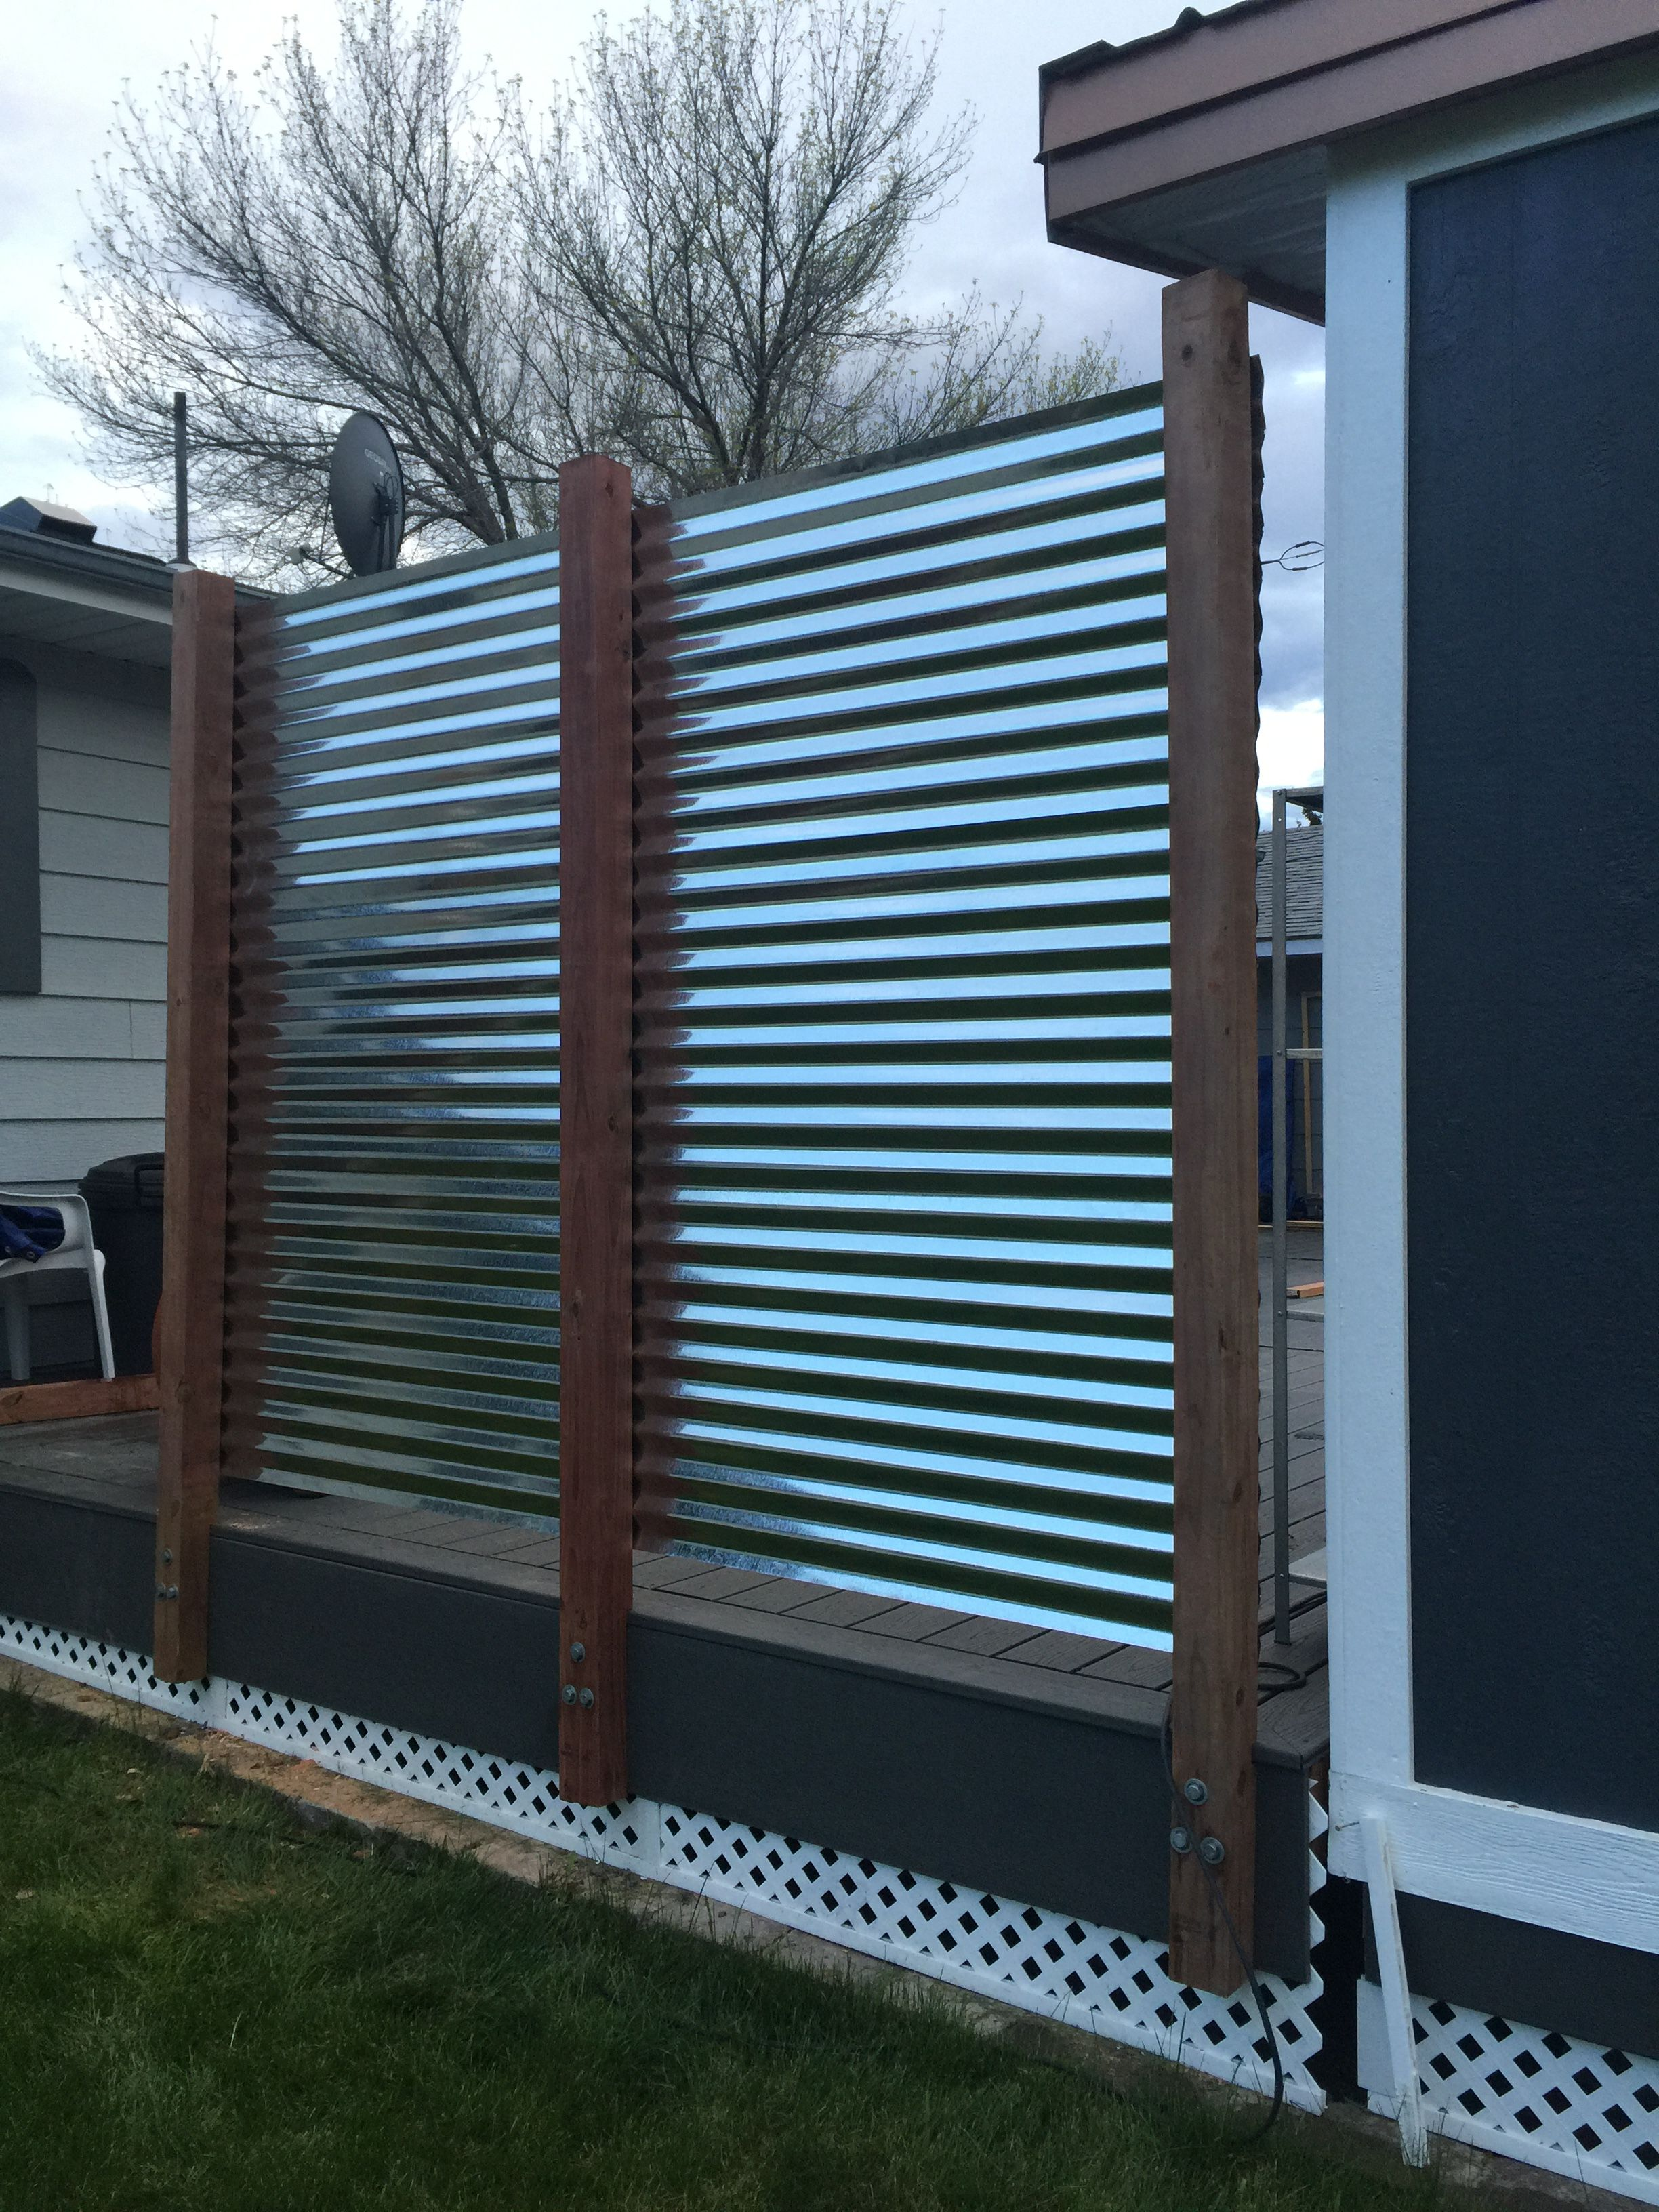 Corrugated metal privacy fence | Backyard fences, Privacy ...